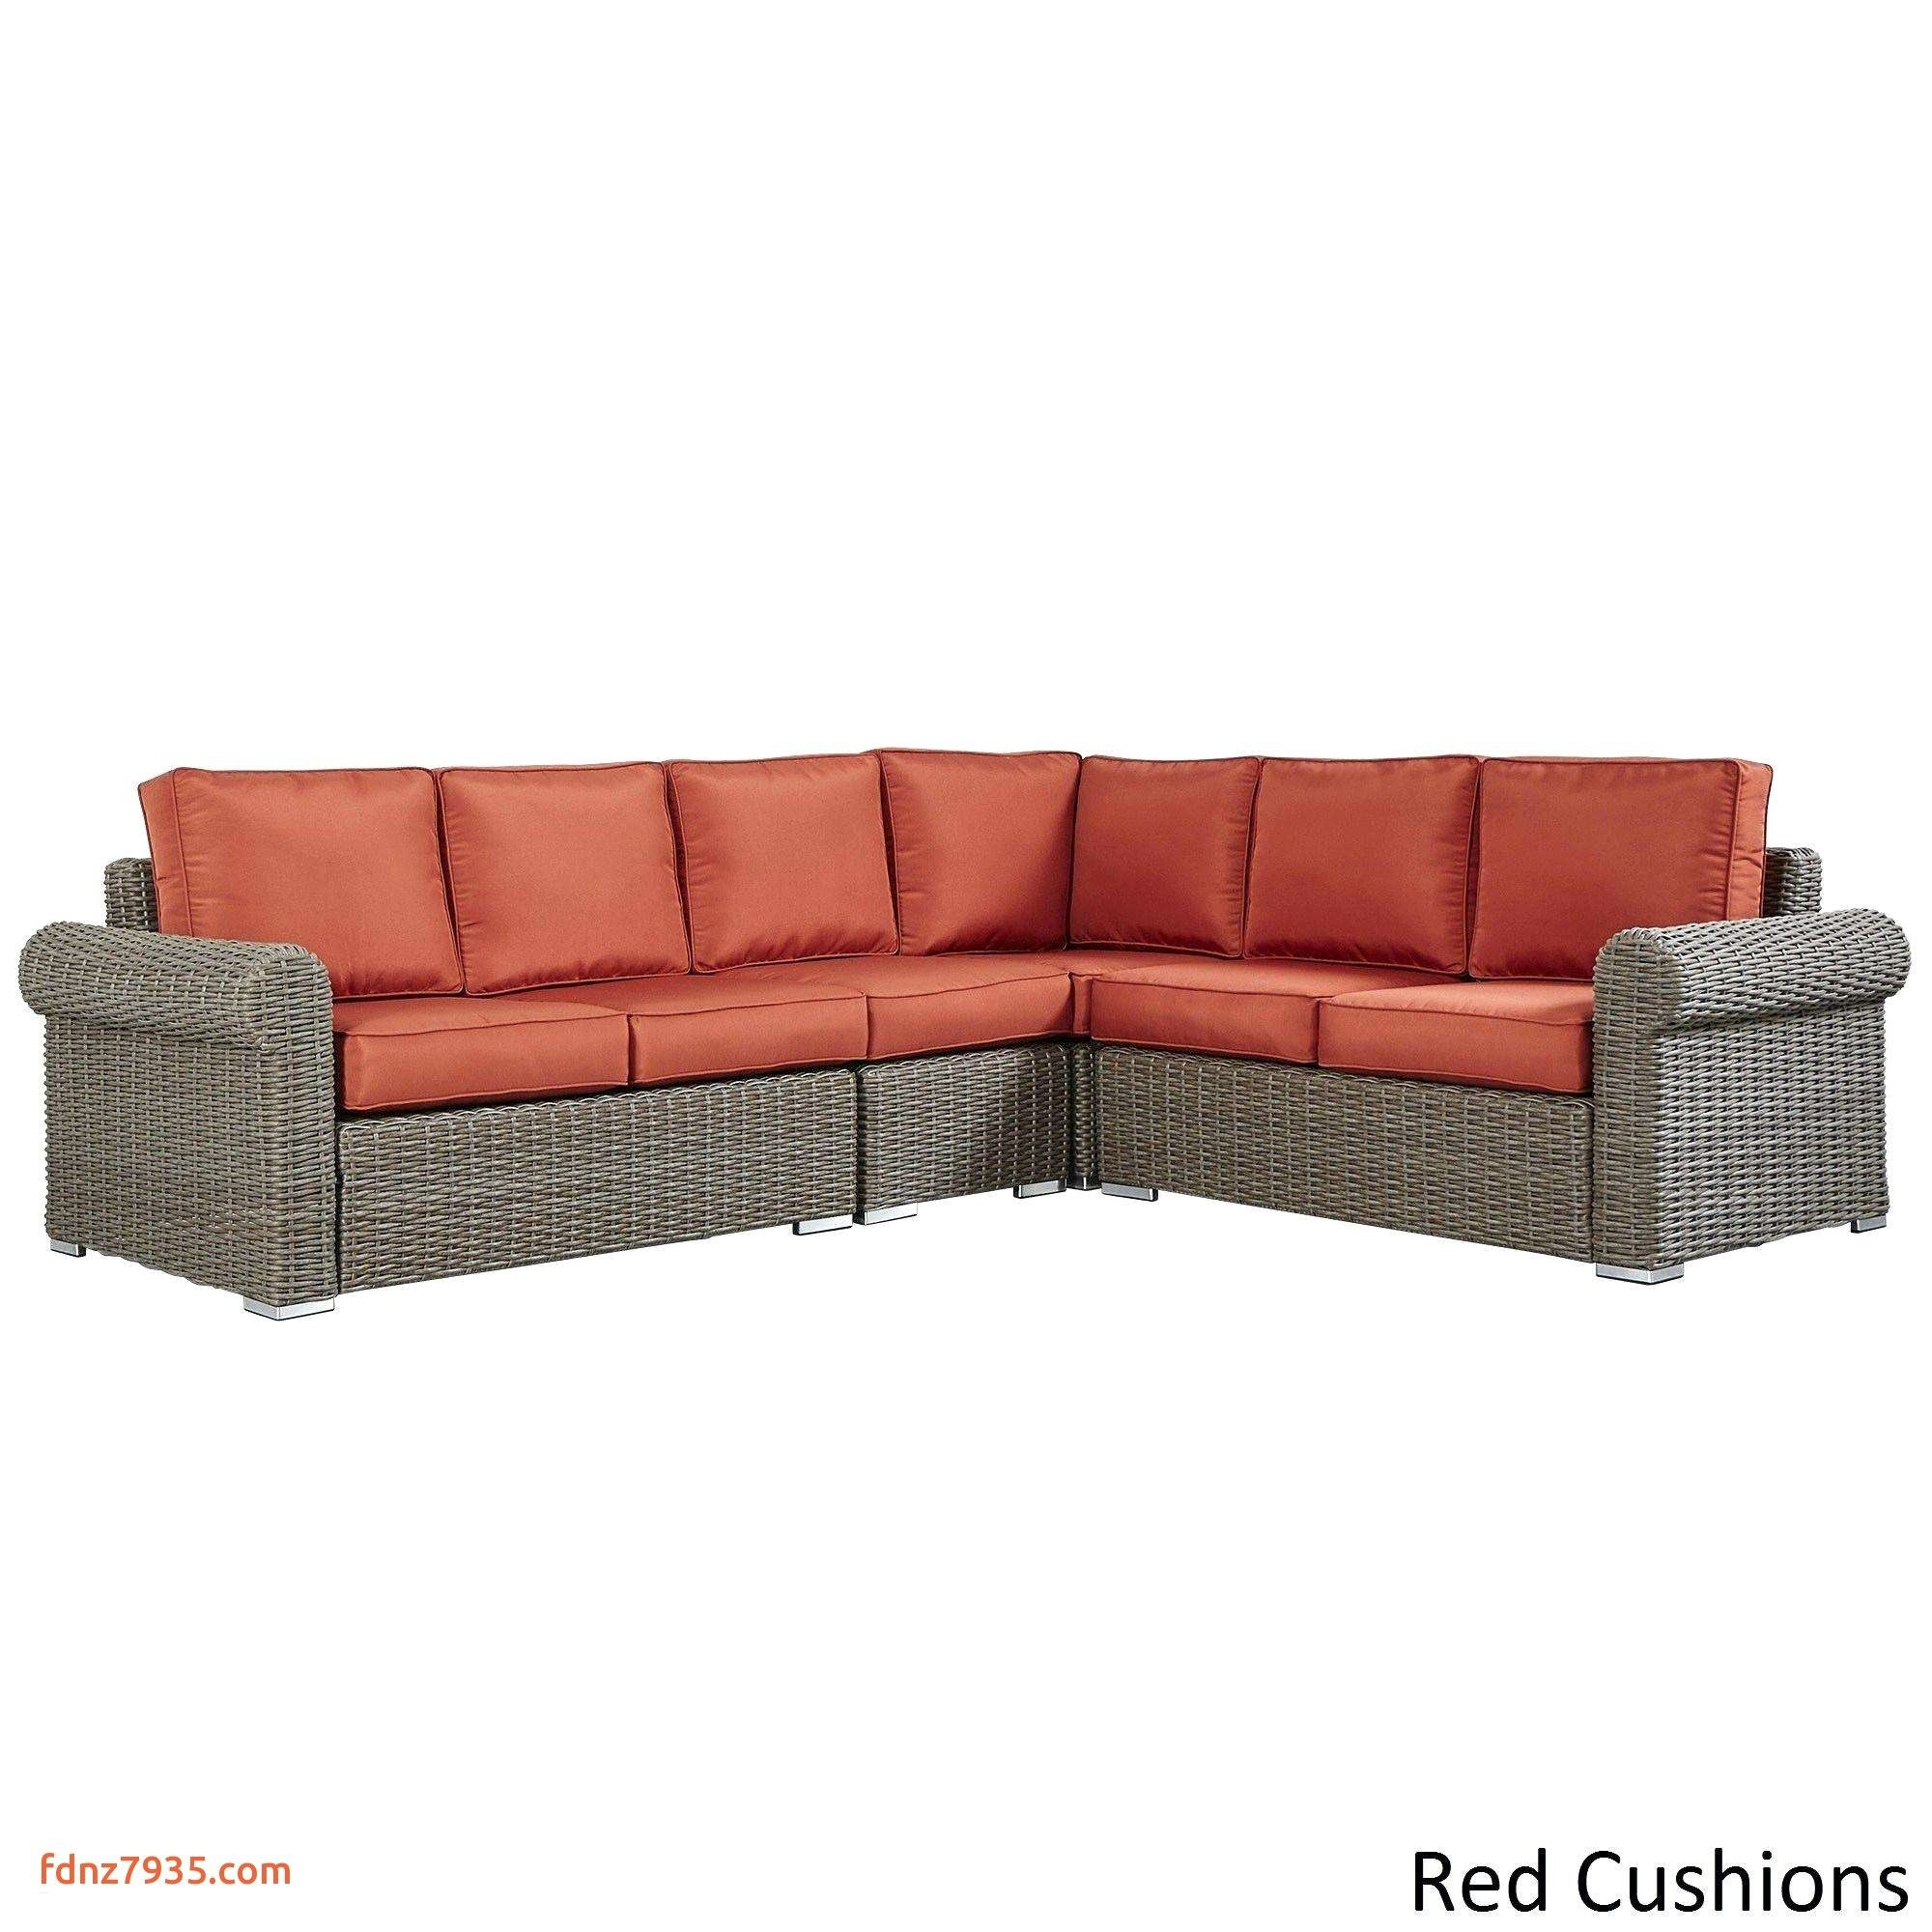 Affordable Patio Furniture Johannesburg Patio Ideas with regard to size 2000 X 2000